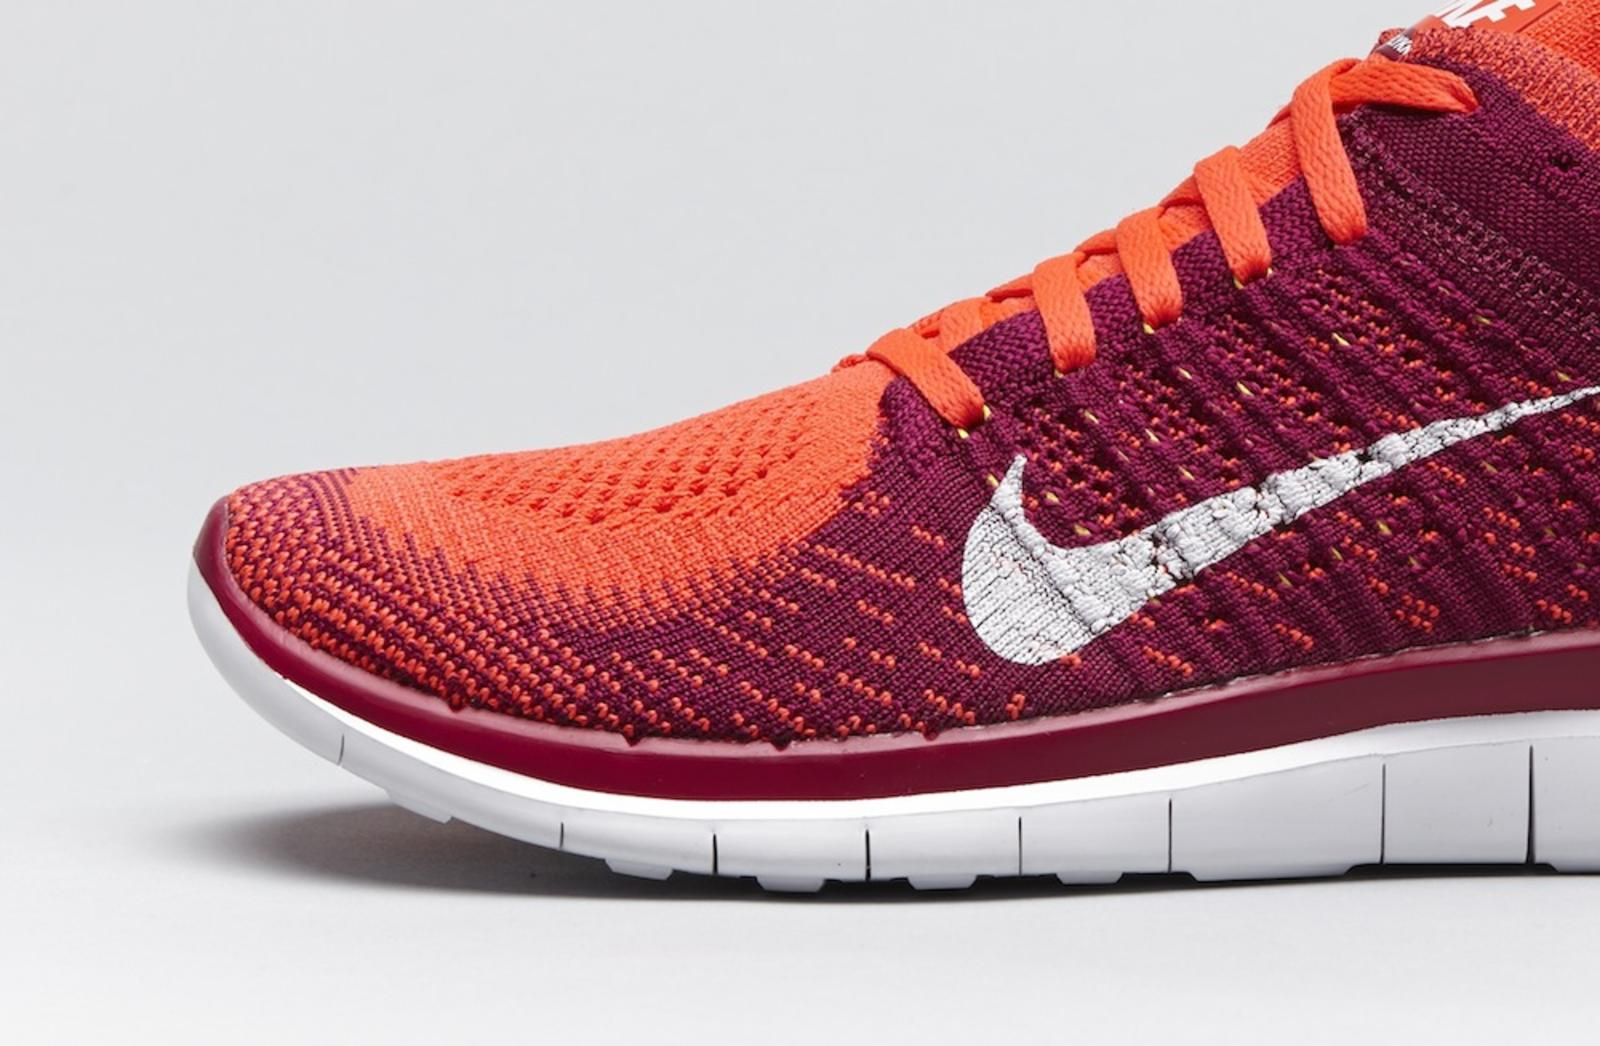 Nike Free 4.0 Flyknit Colorways, Release Dates, Pricing